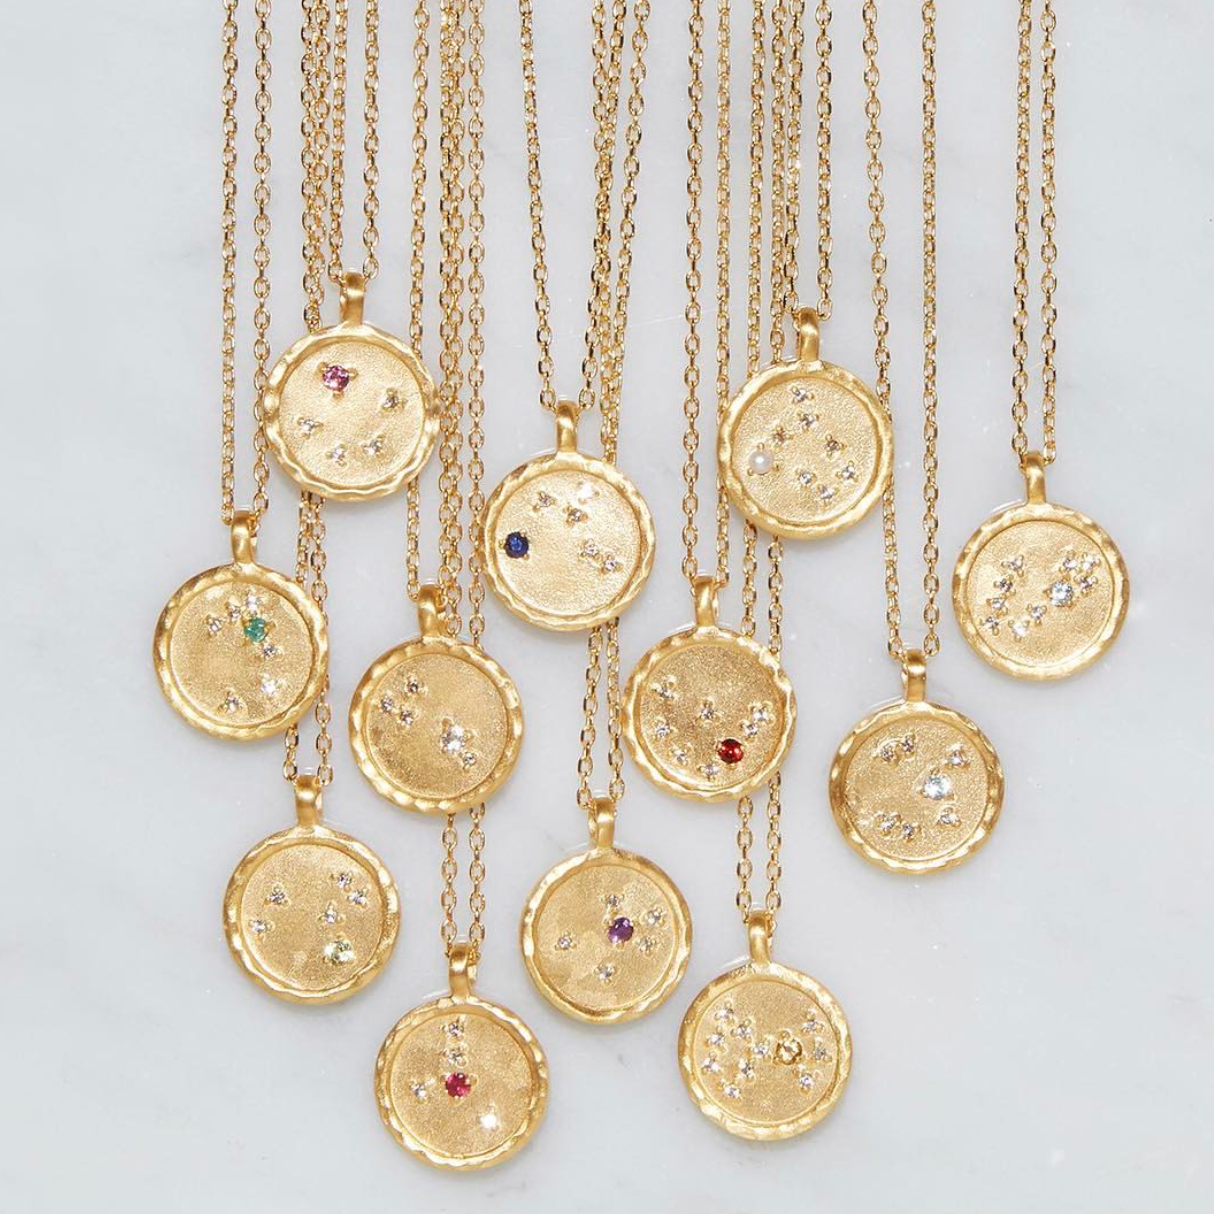 Astrological Necklaces – Satya Jewelry Zodiac Collection